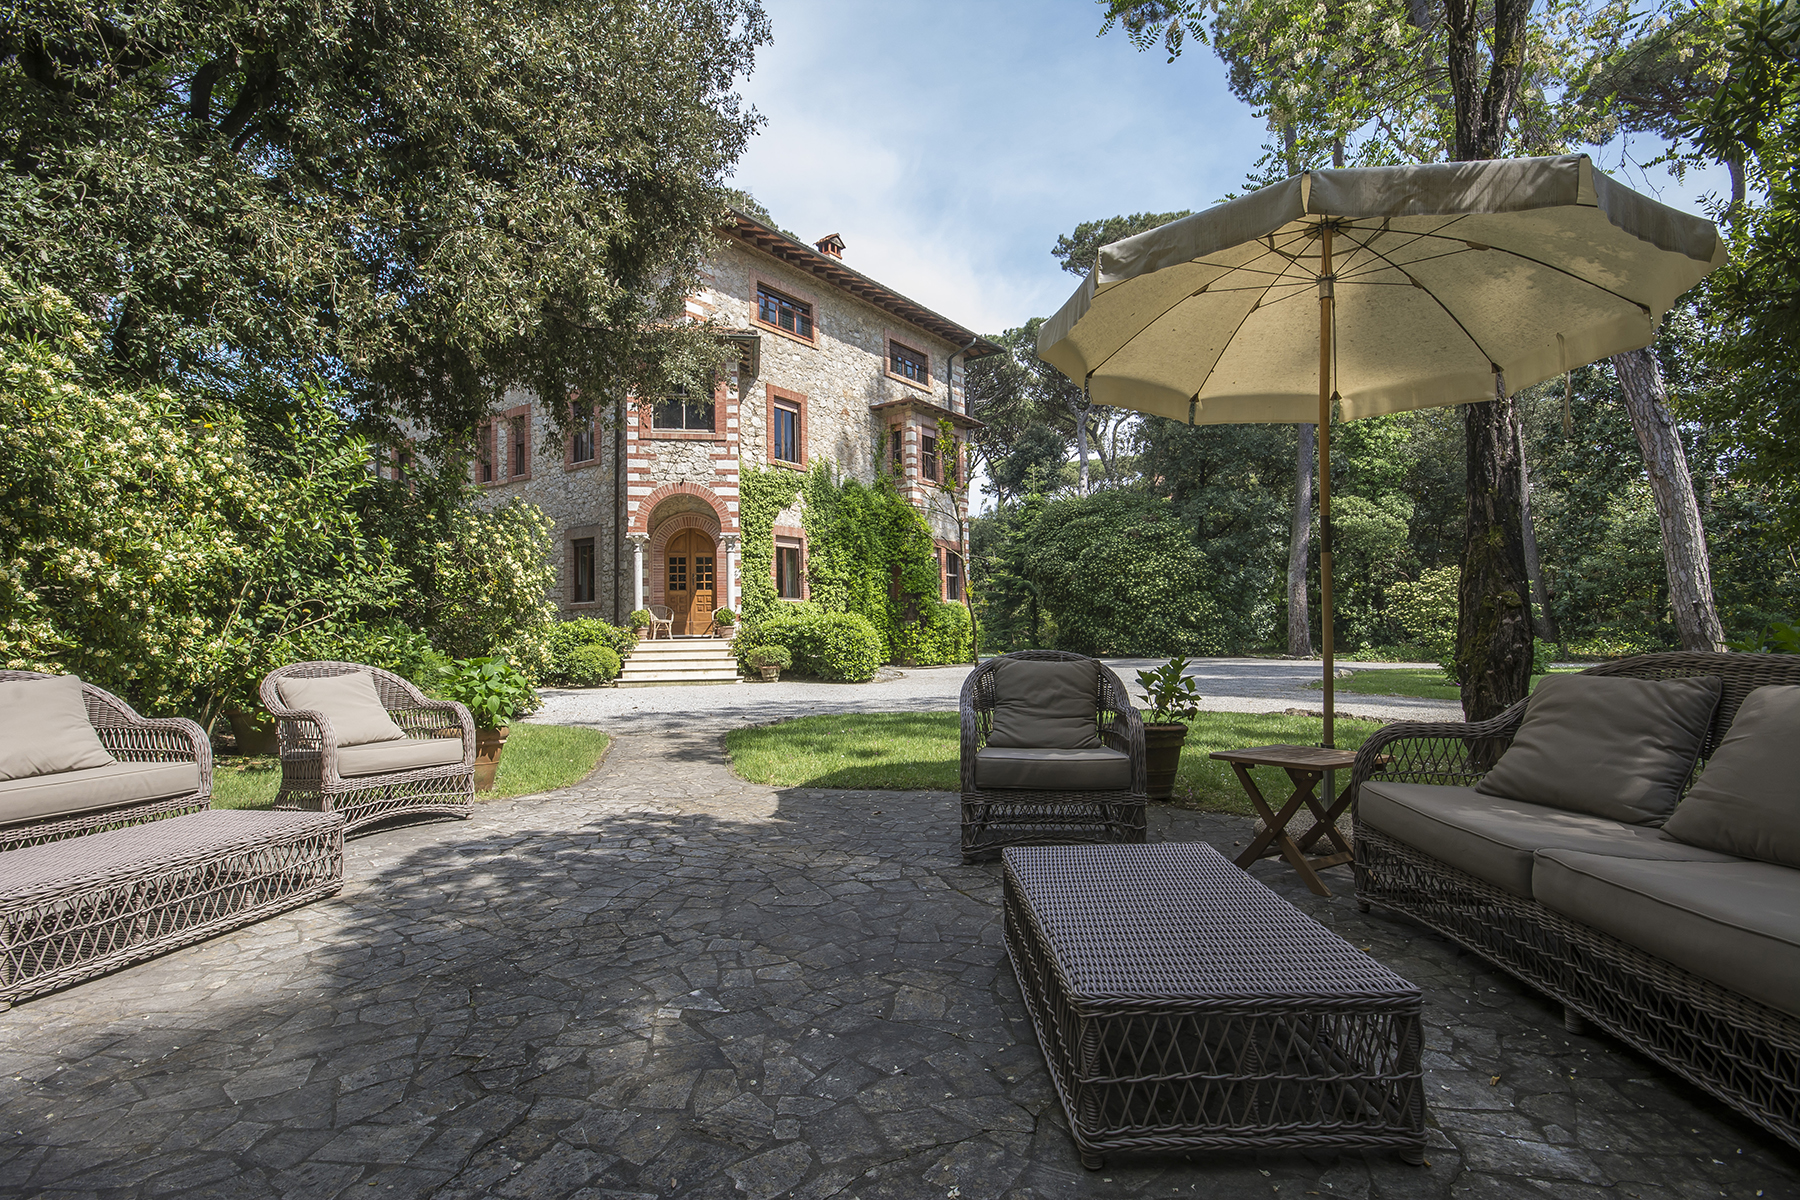 Single Family Home for Sale at Lovely villa a few steps away from the beach Forte Dei Marmi, Italy